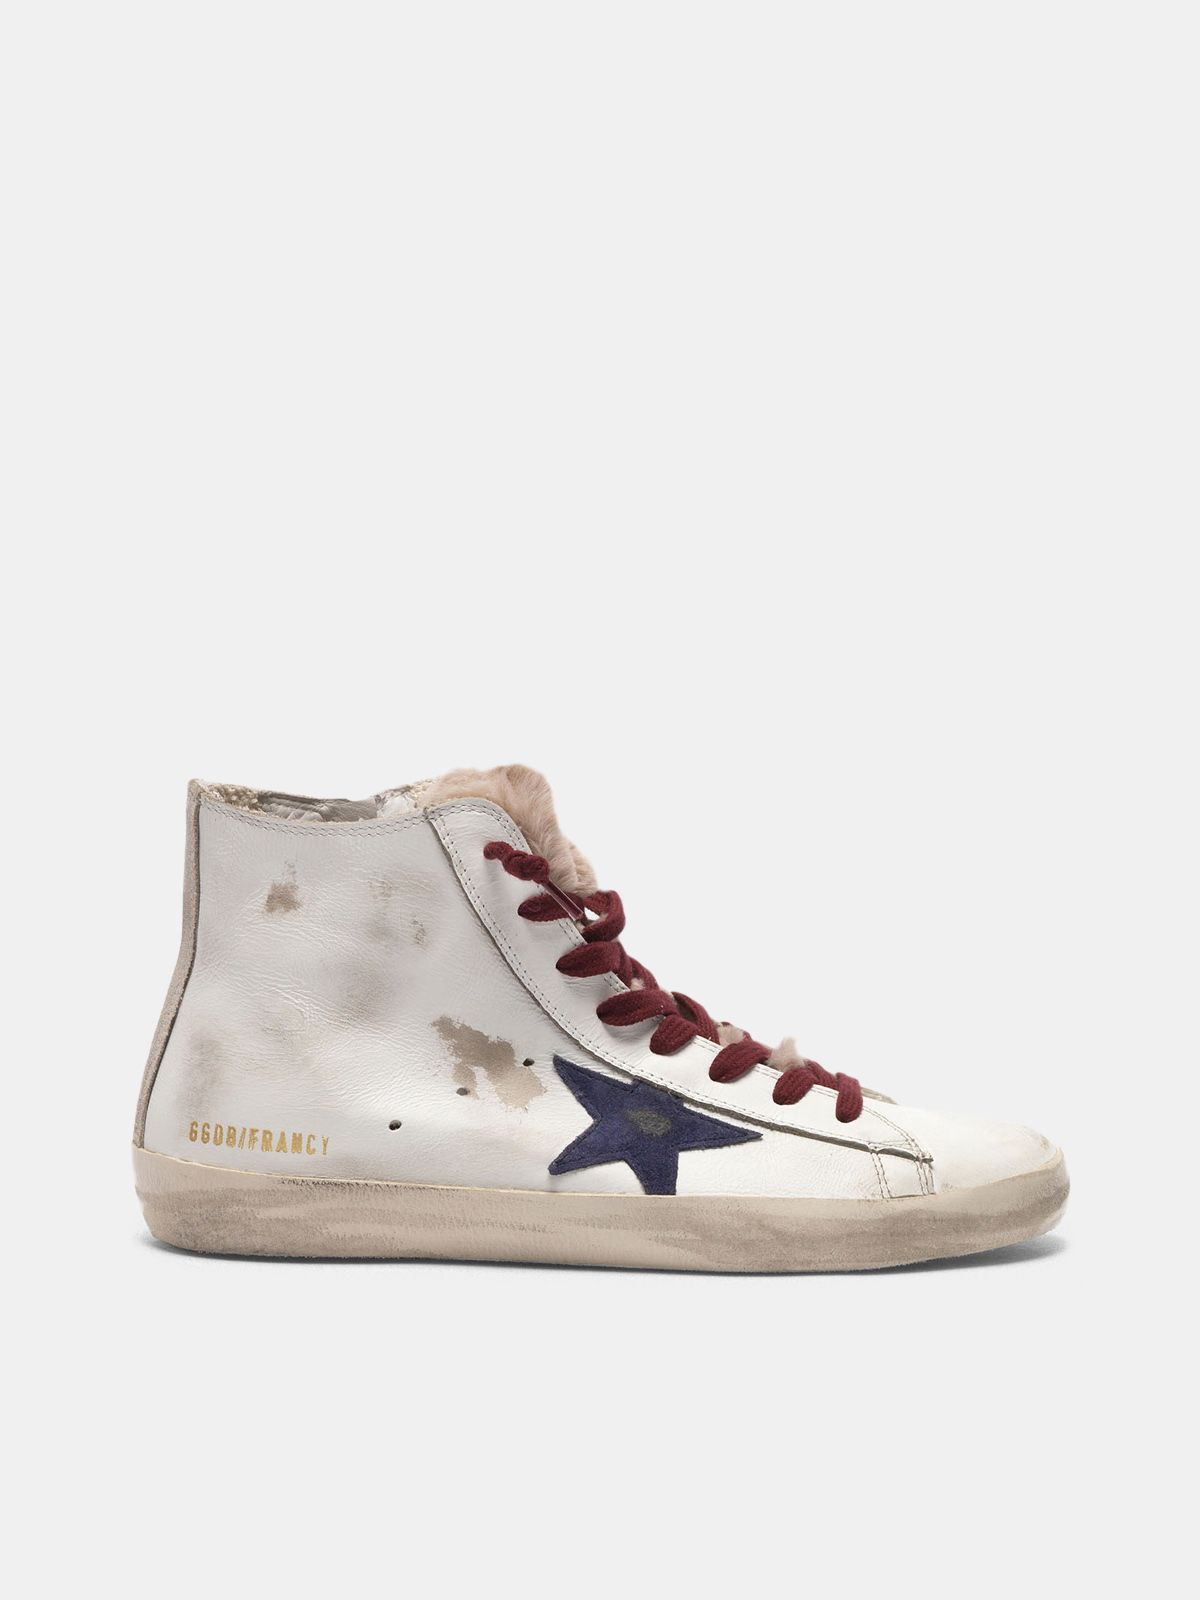 Golden Goose - Sneakers Francy in pelle con linguetta in pelliccia in